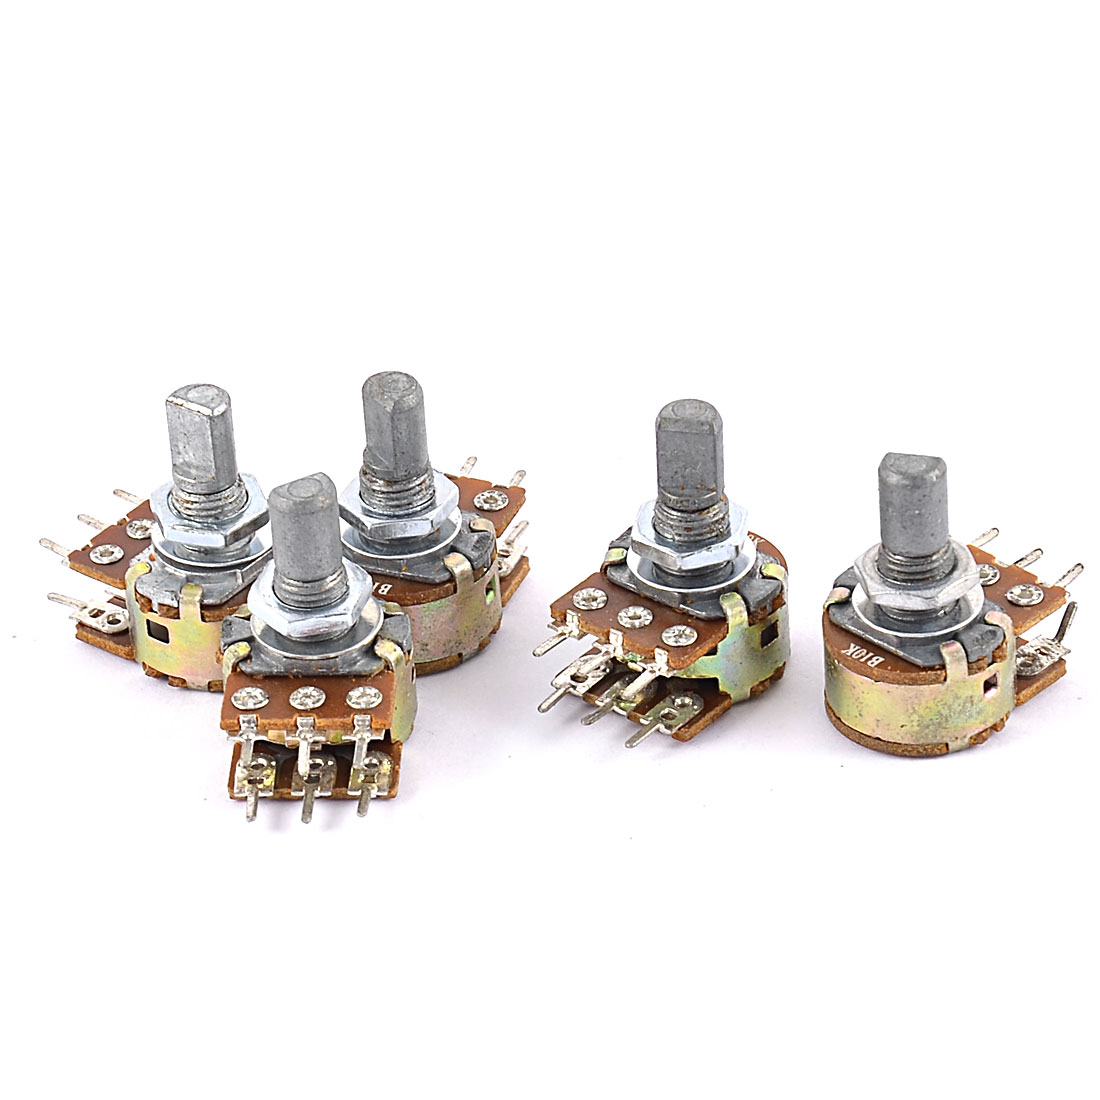 5 Pcs B10K 10K Ohm 6 Terminals Dual Linear Rotary Taper Potentiometers